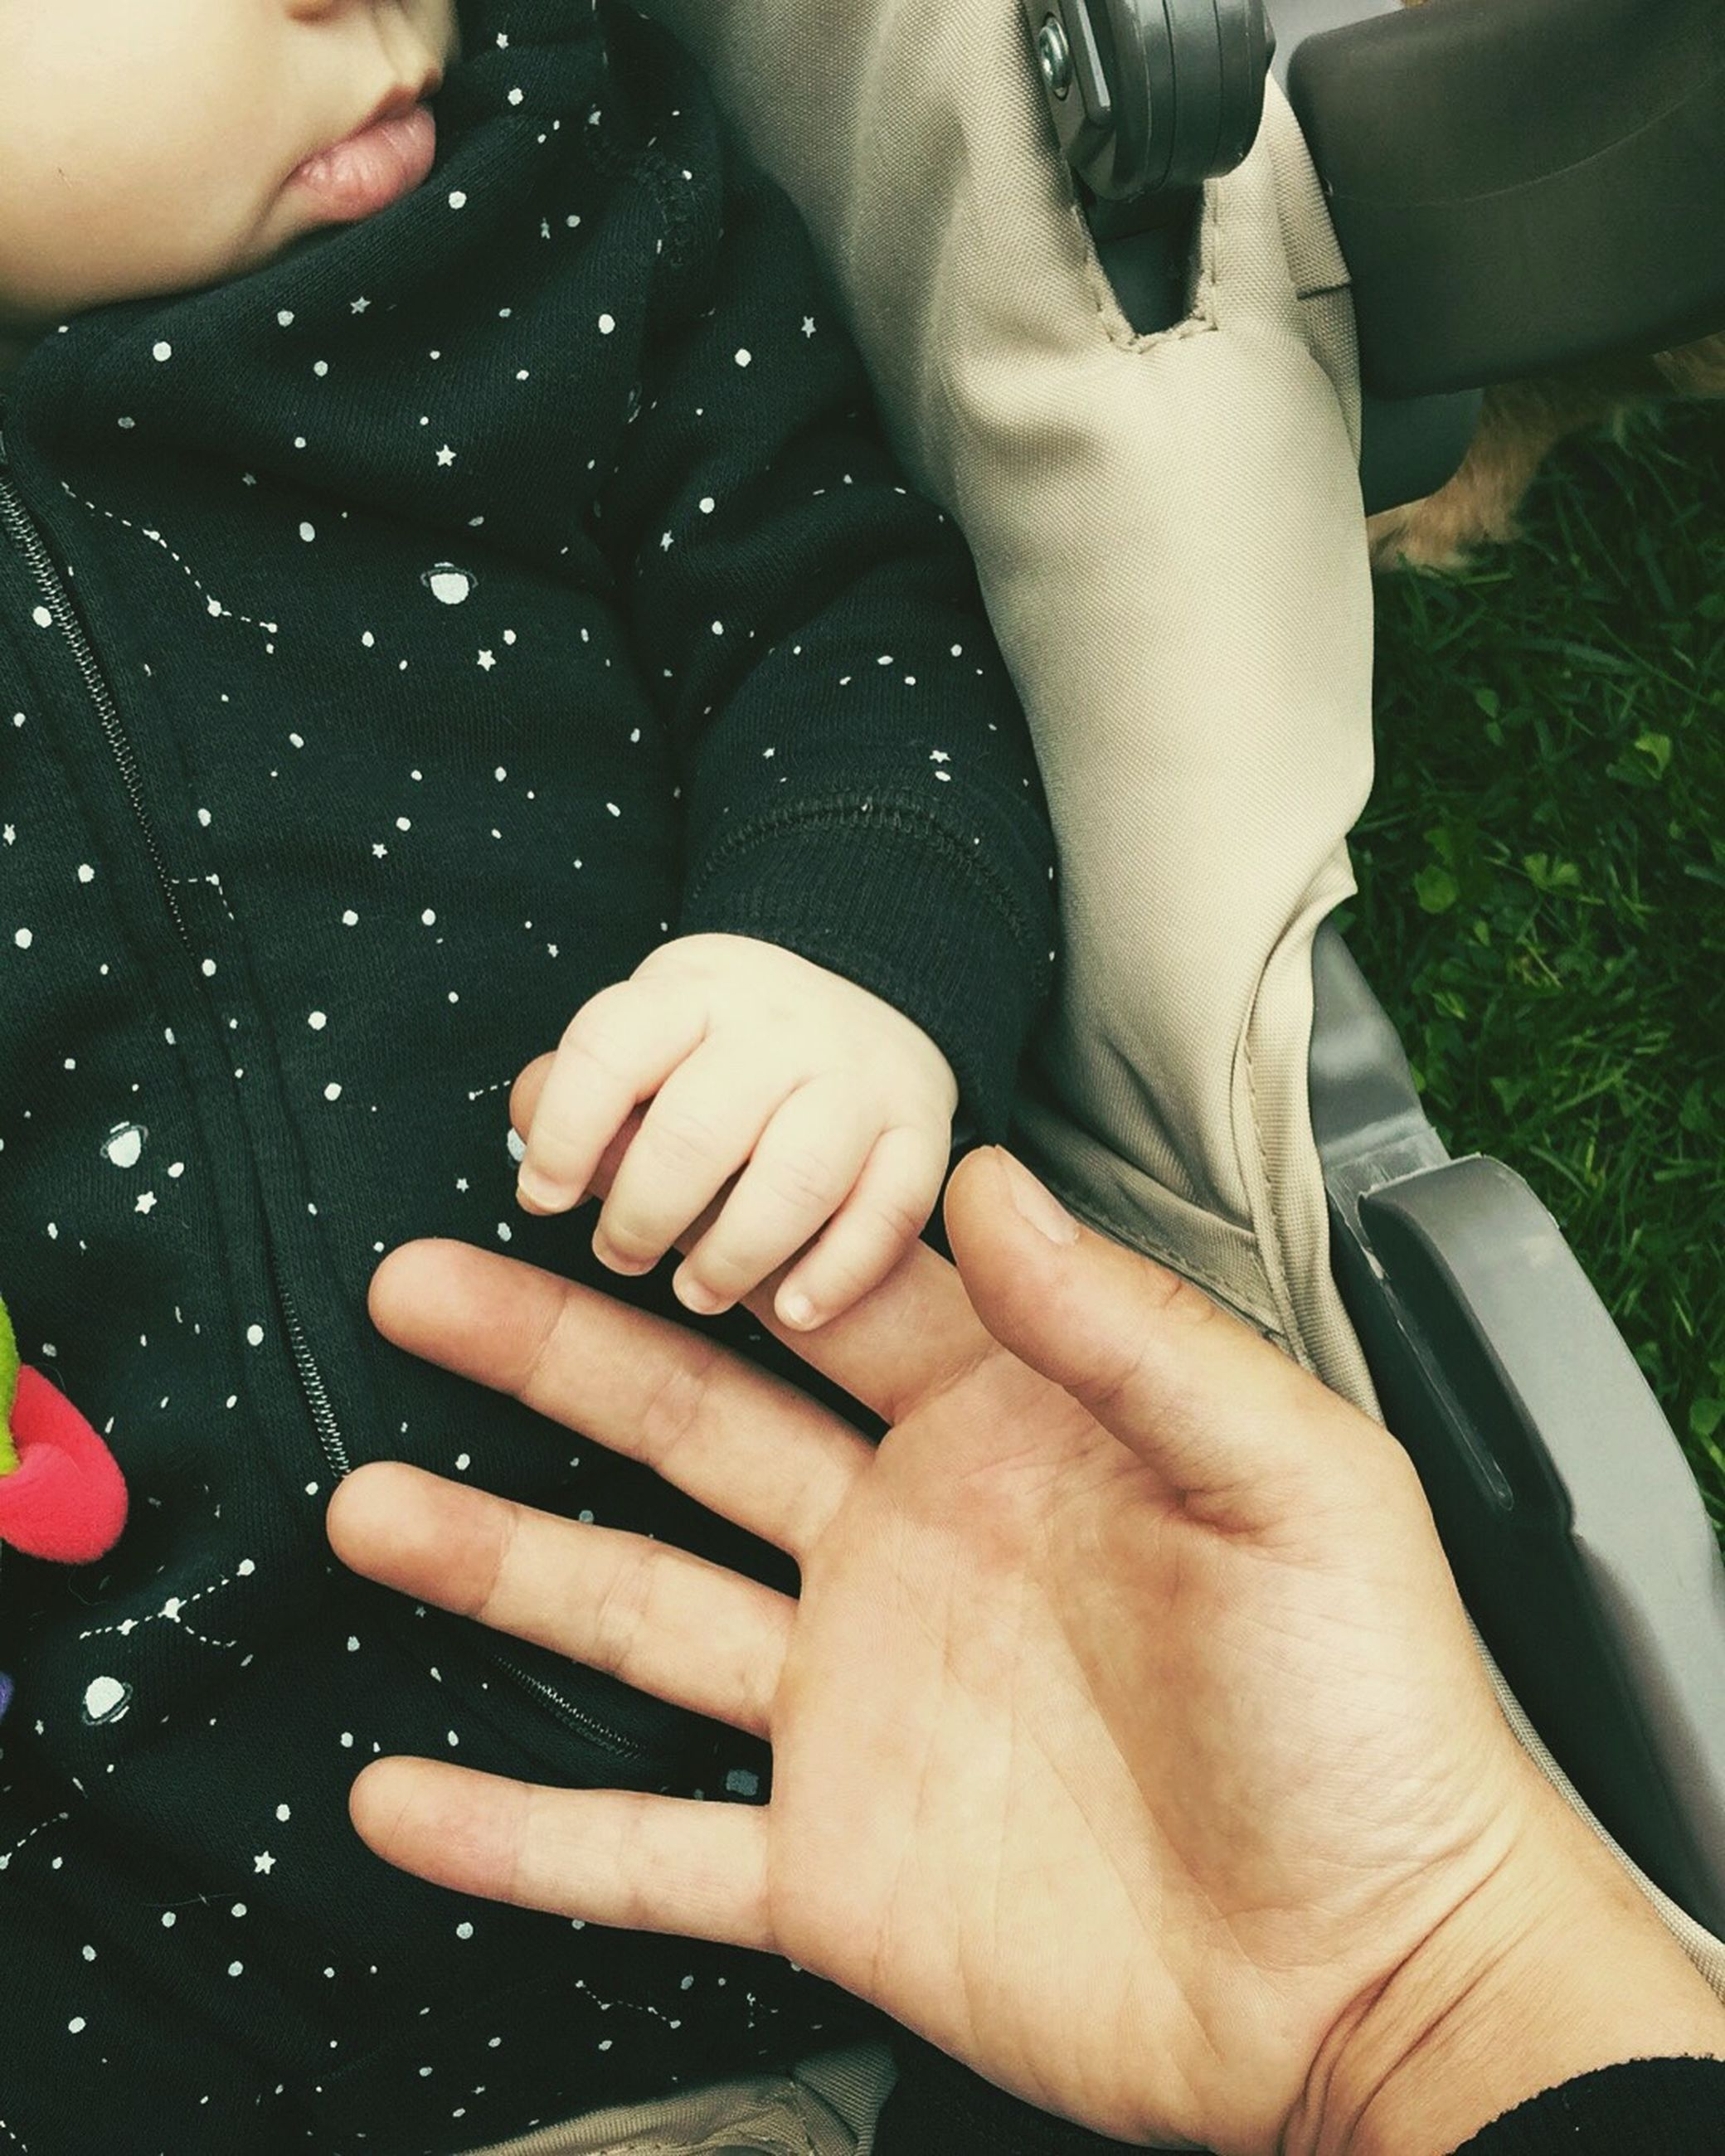 togetherness, two people, human hand, love, bonding, real people, men, women, care, childhood, father, human body part, boys, friendship, day, outdoors, close-up, people